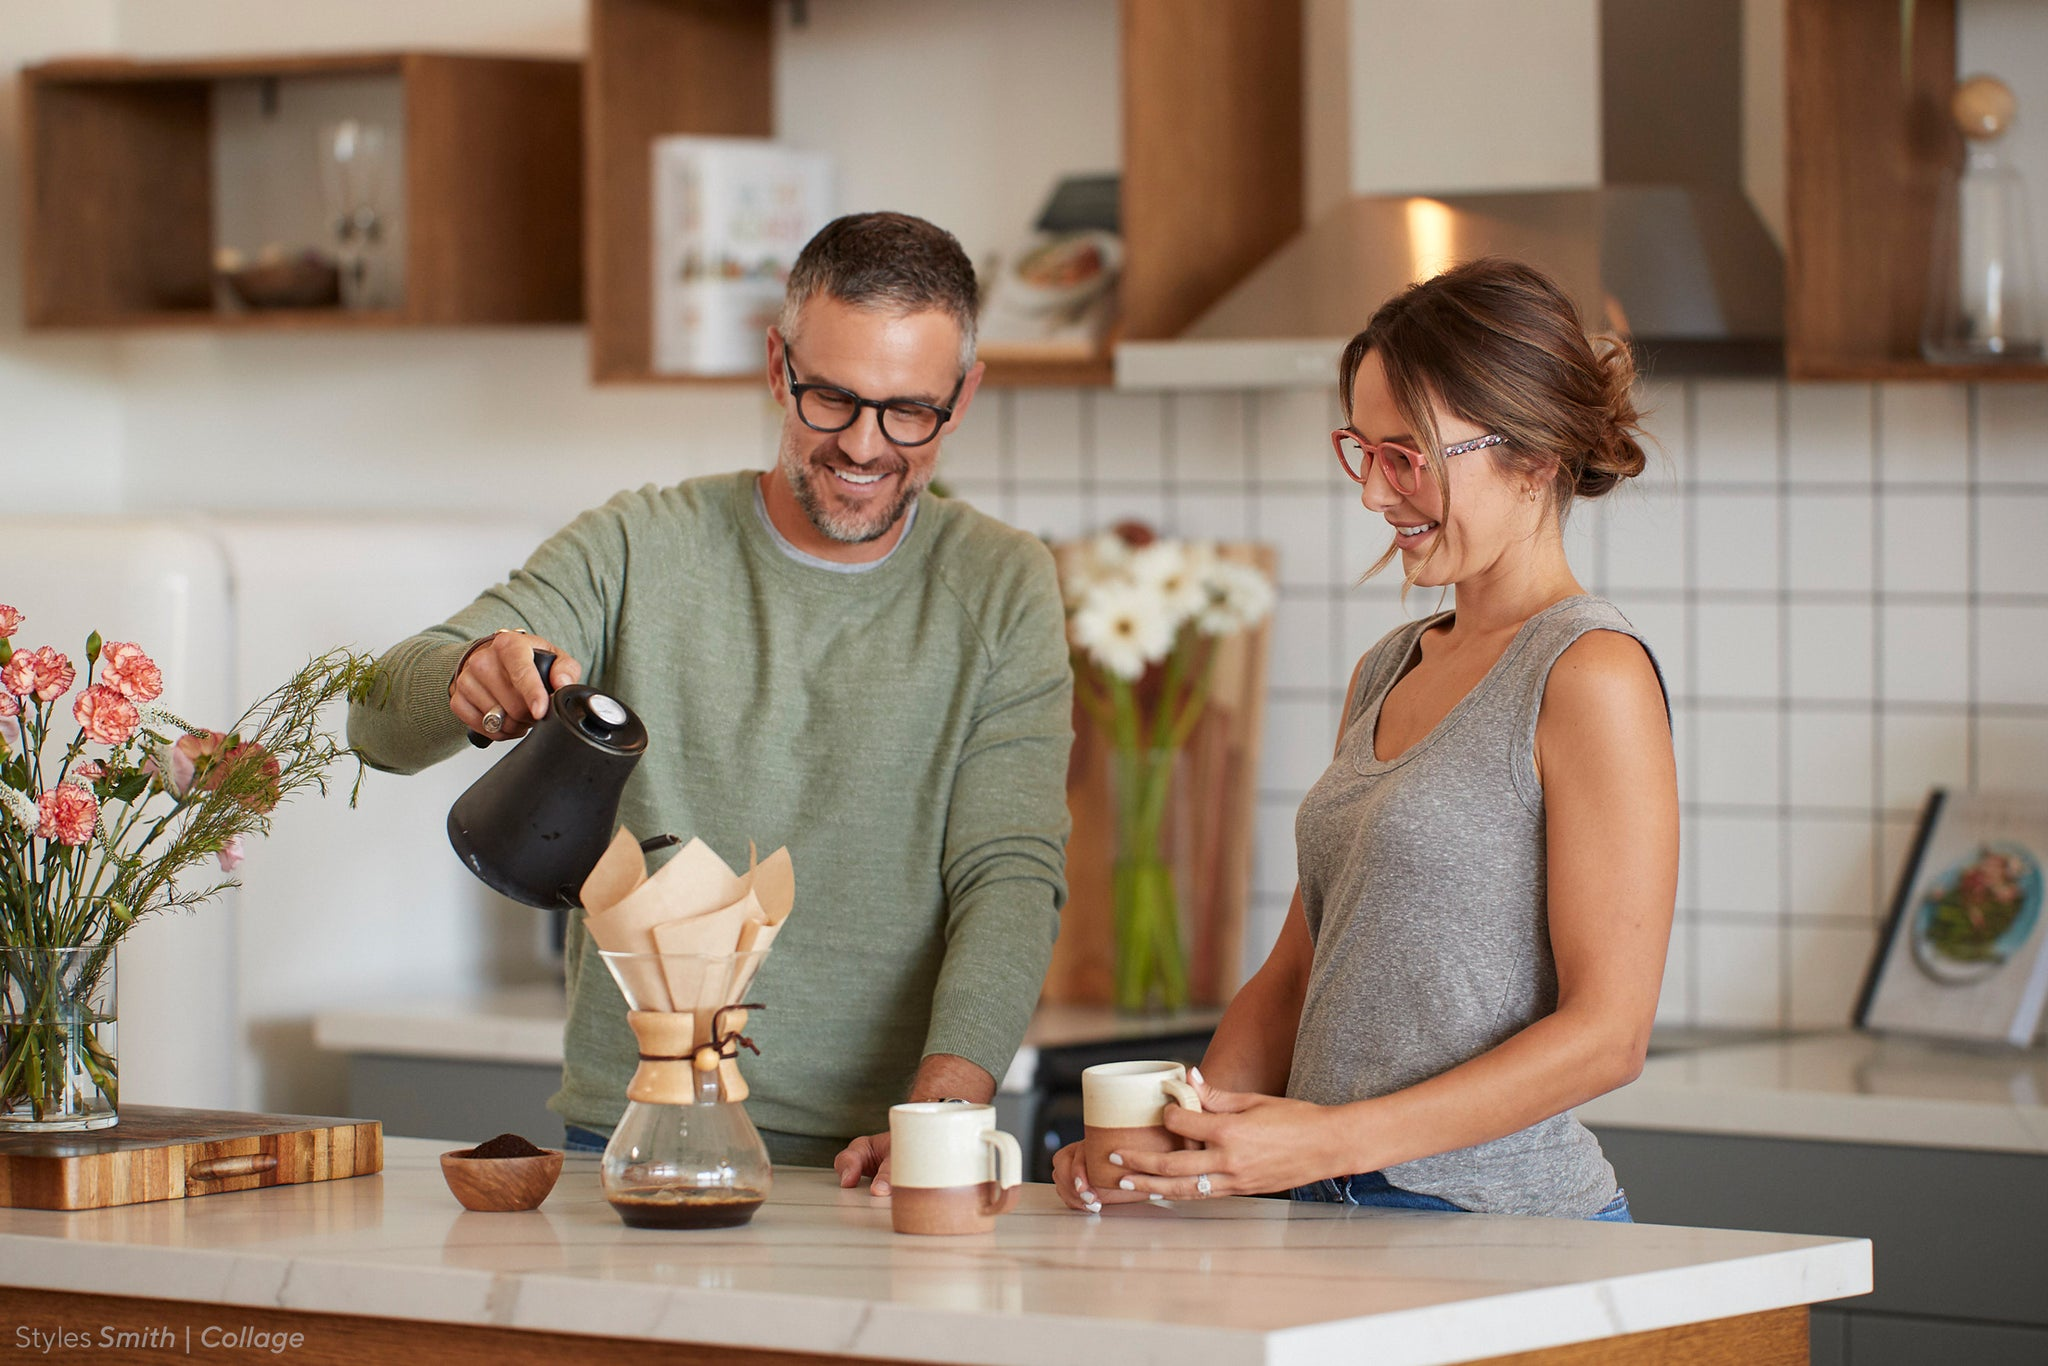 Man and woman brewing coffee in the kitchen wearing Peepers blue light glasses